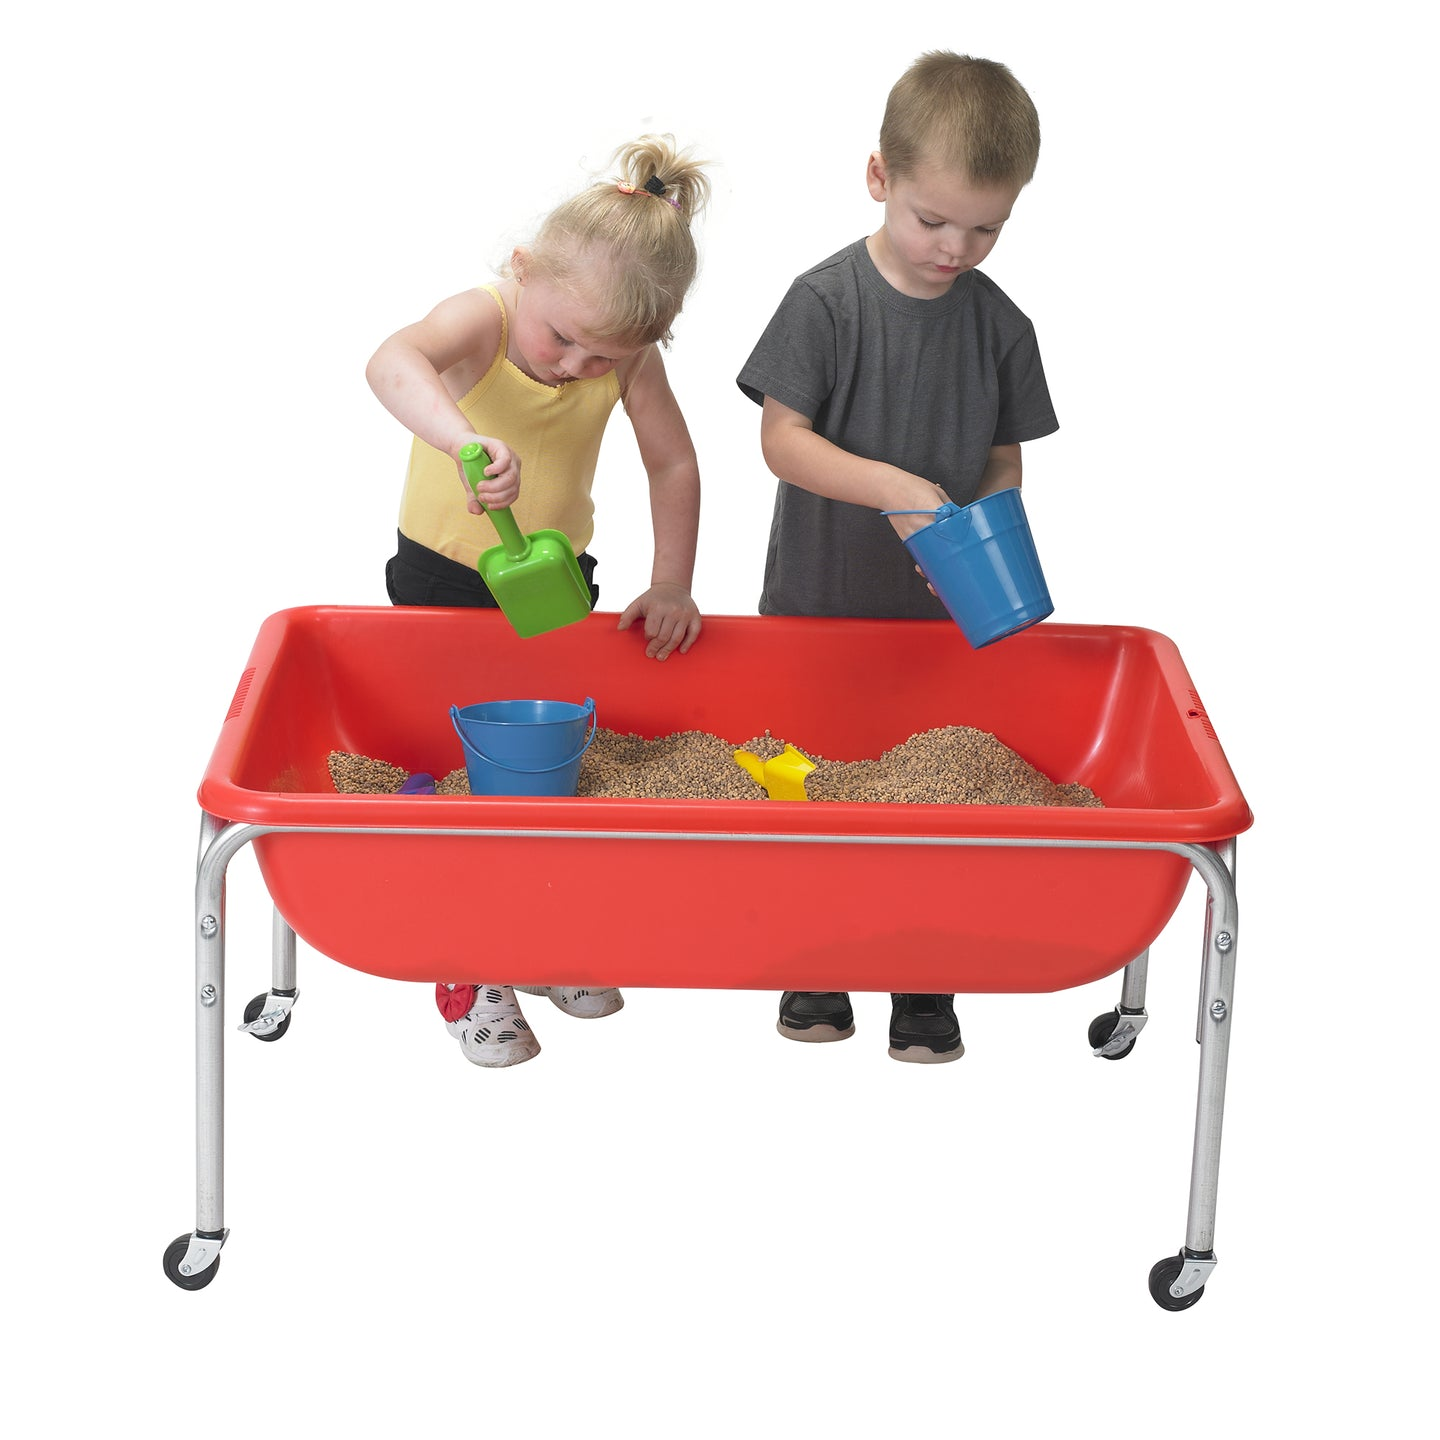 Children's Factory Large Sensory Table and Lid Set - 18